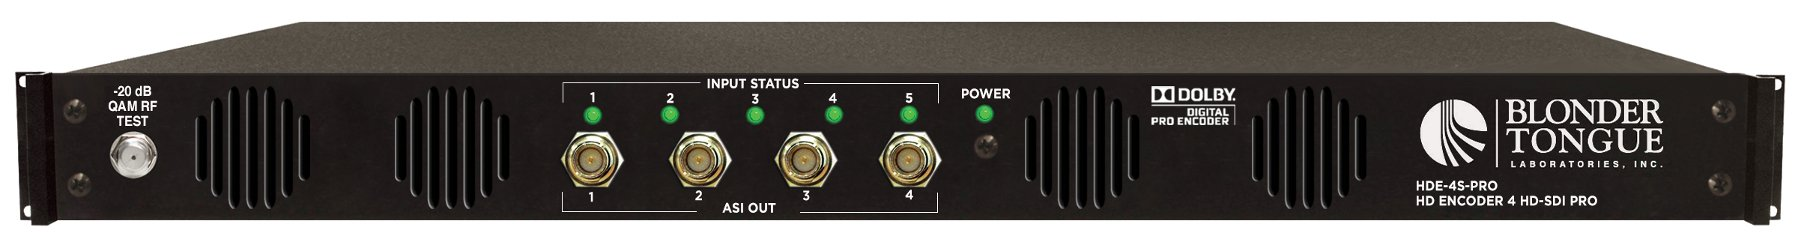 HDE-4S-PRO with Low Latency Option (Manufacturer #: 6372 LL)